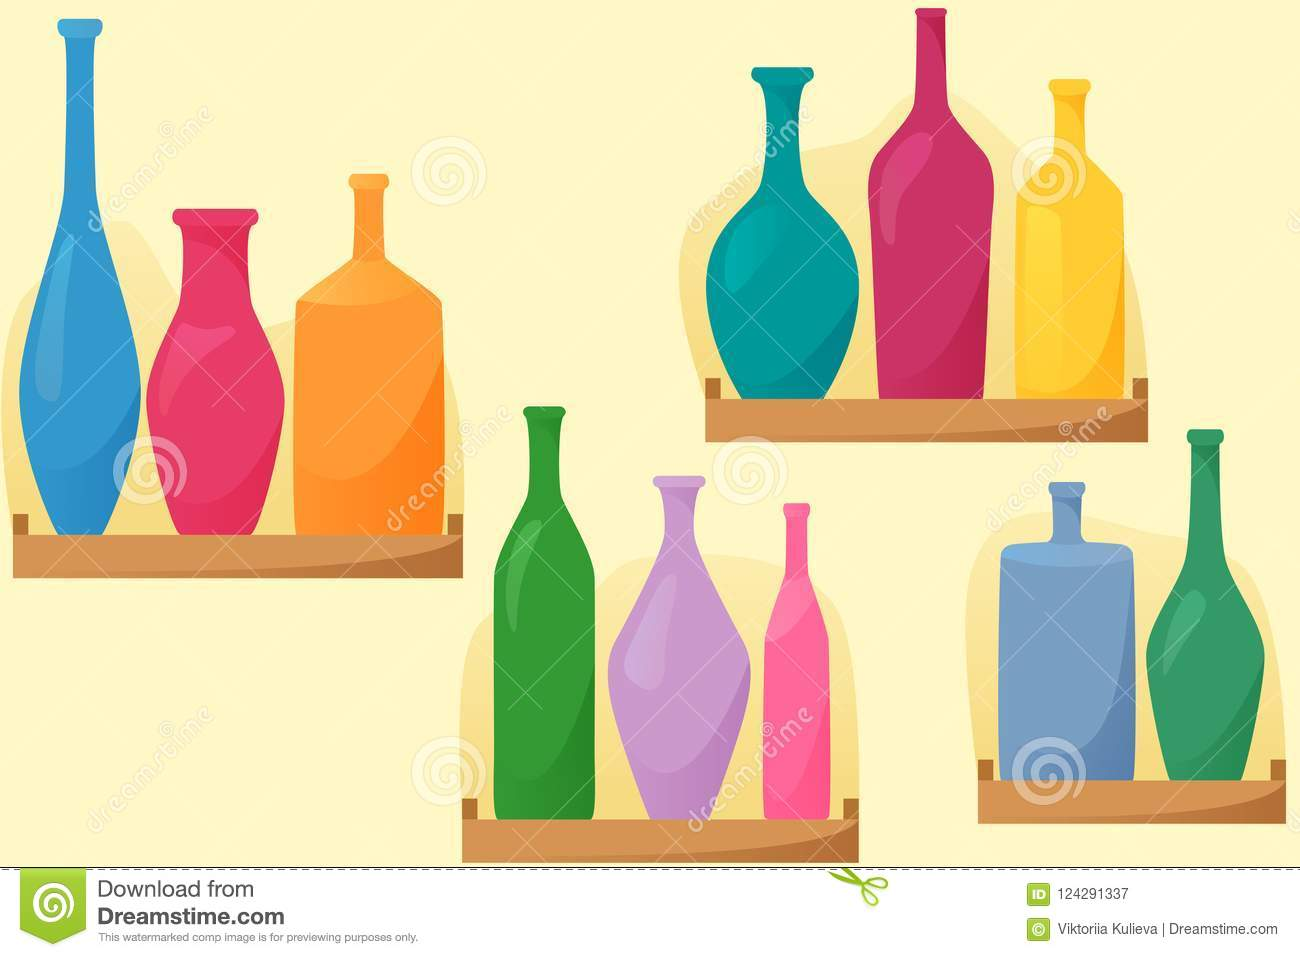 Bright bottles on shelfs, seamless pattern with bottles, flat style decoration, vector